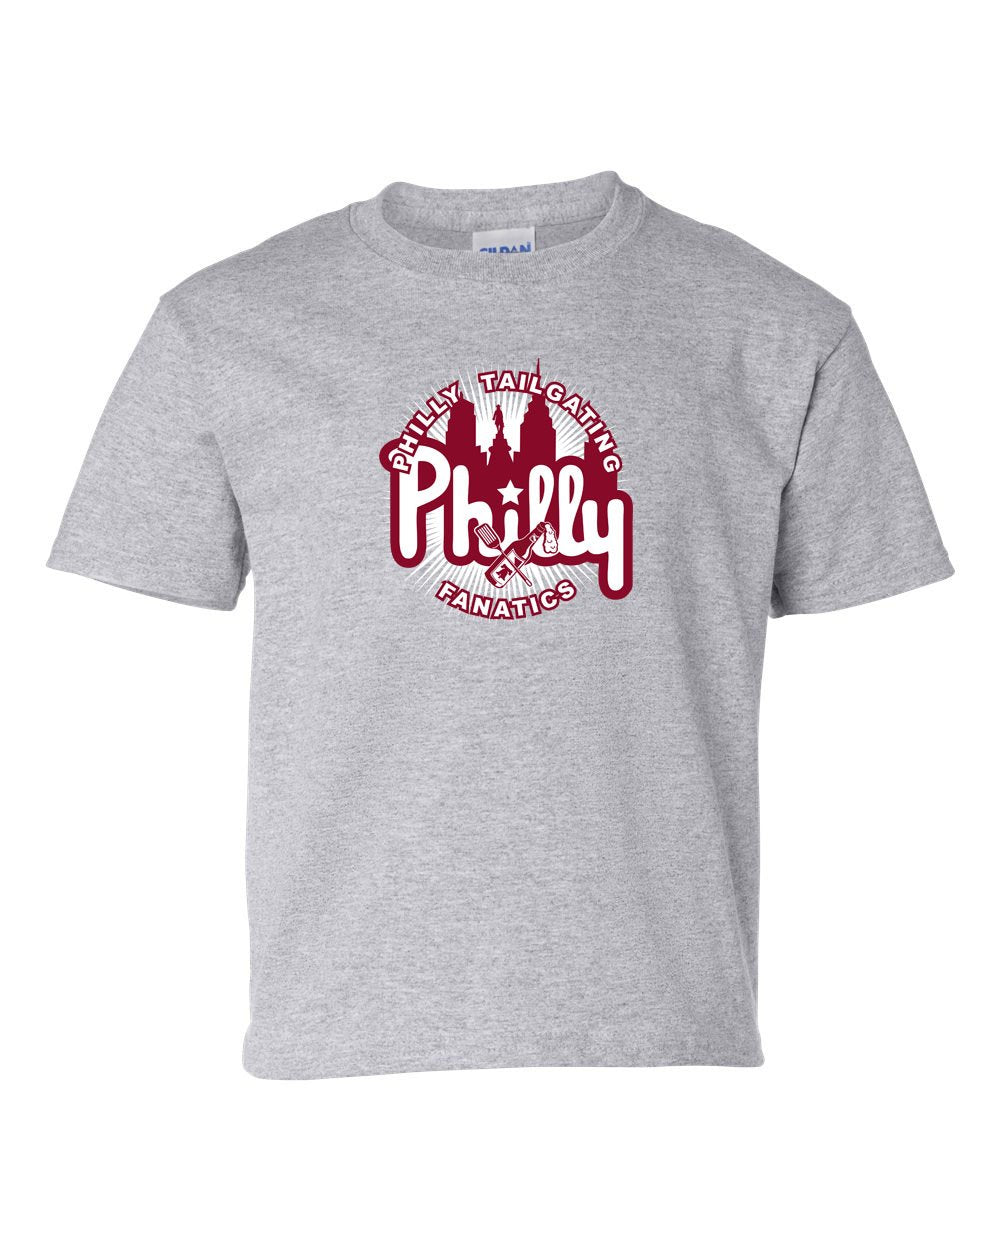 Philly Tailgating KIDS T-Shirt